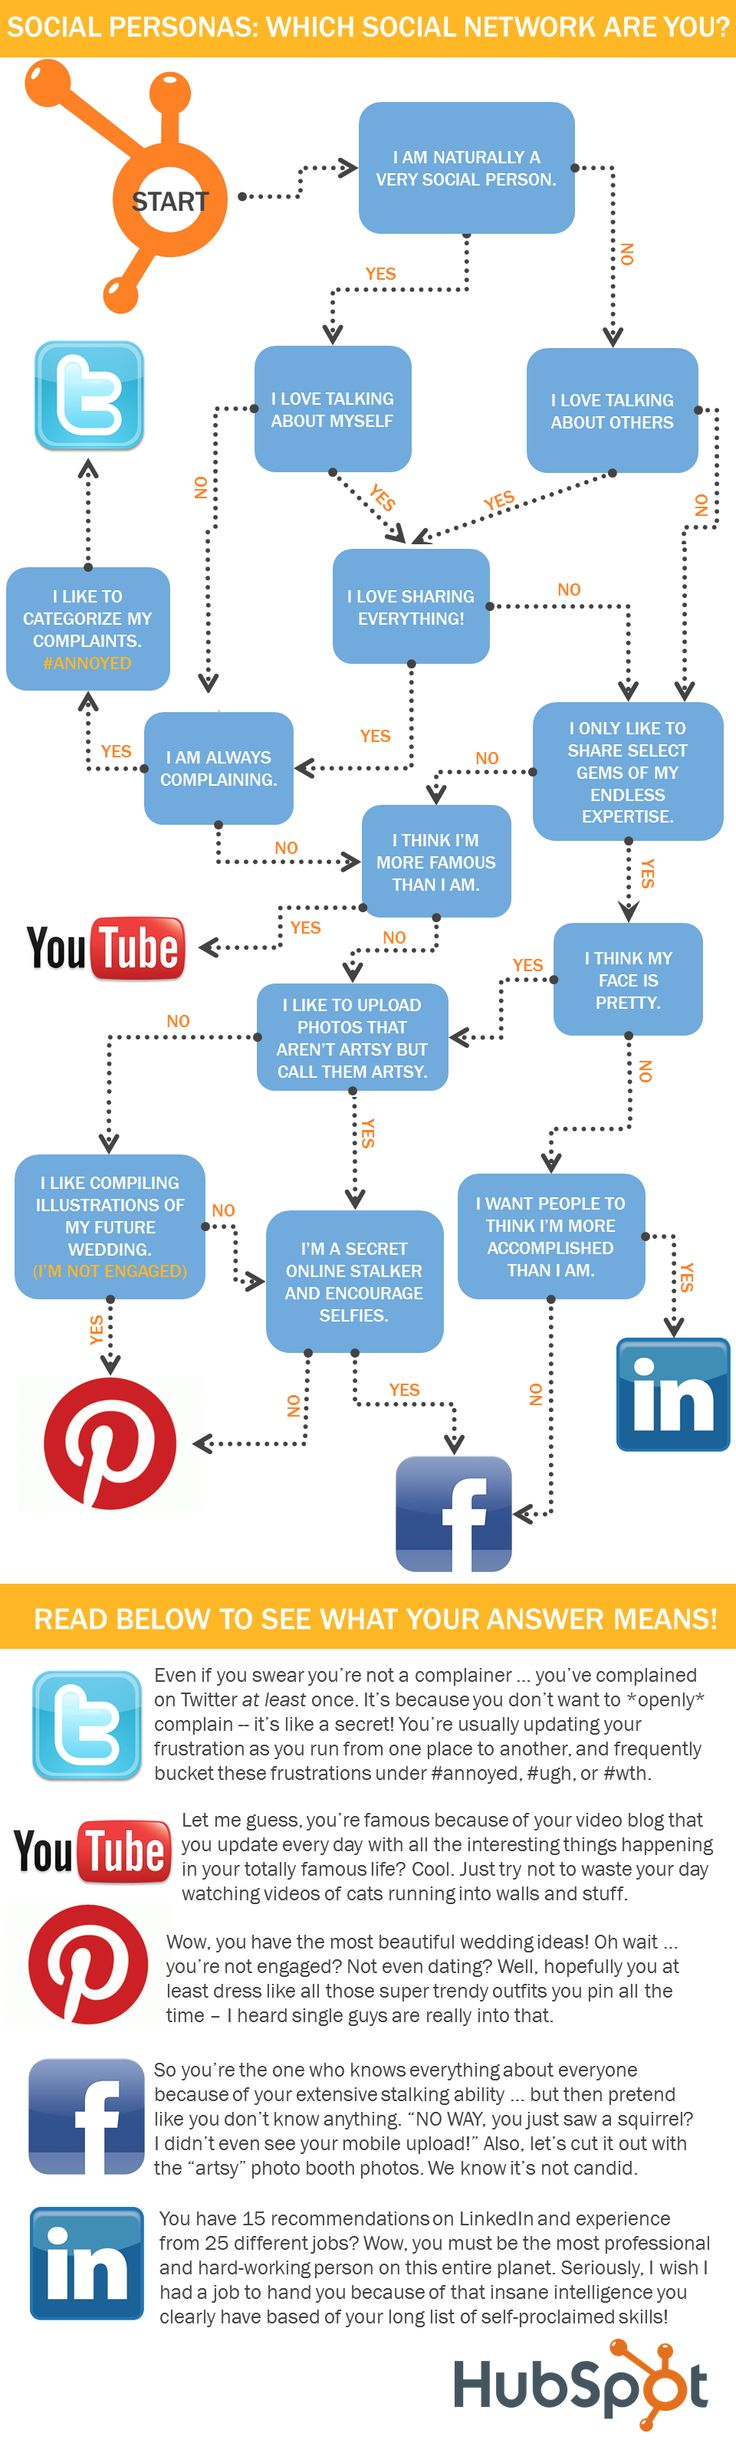 If You Were a Social Network, Which Would You Be? #SocialMedia #DecisionTree #infographic